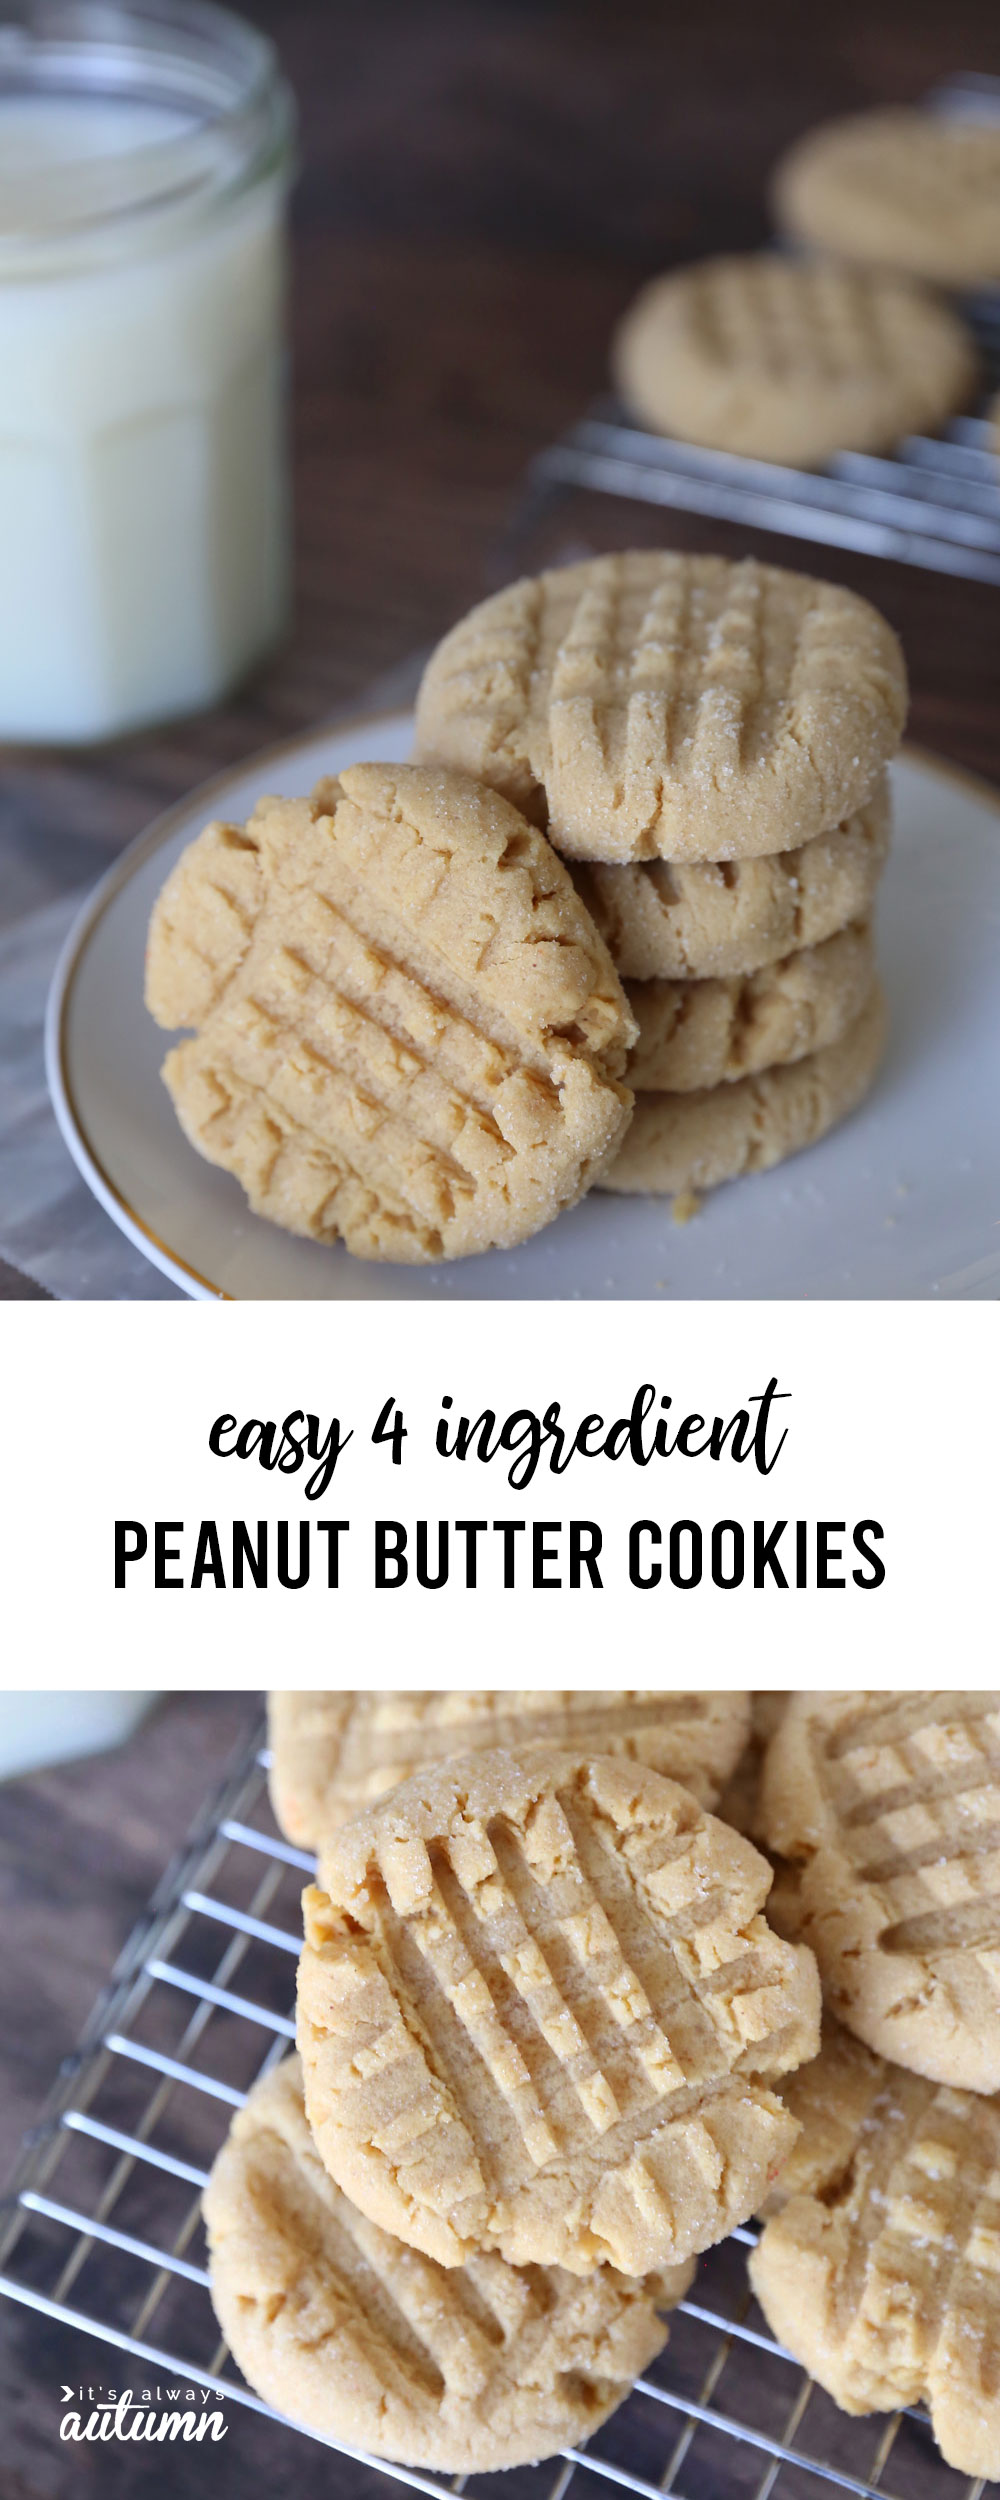 Easy four ingredient peanut butter cookies